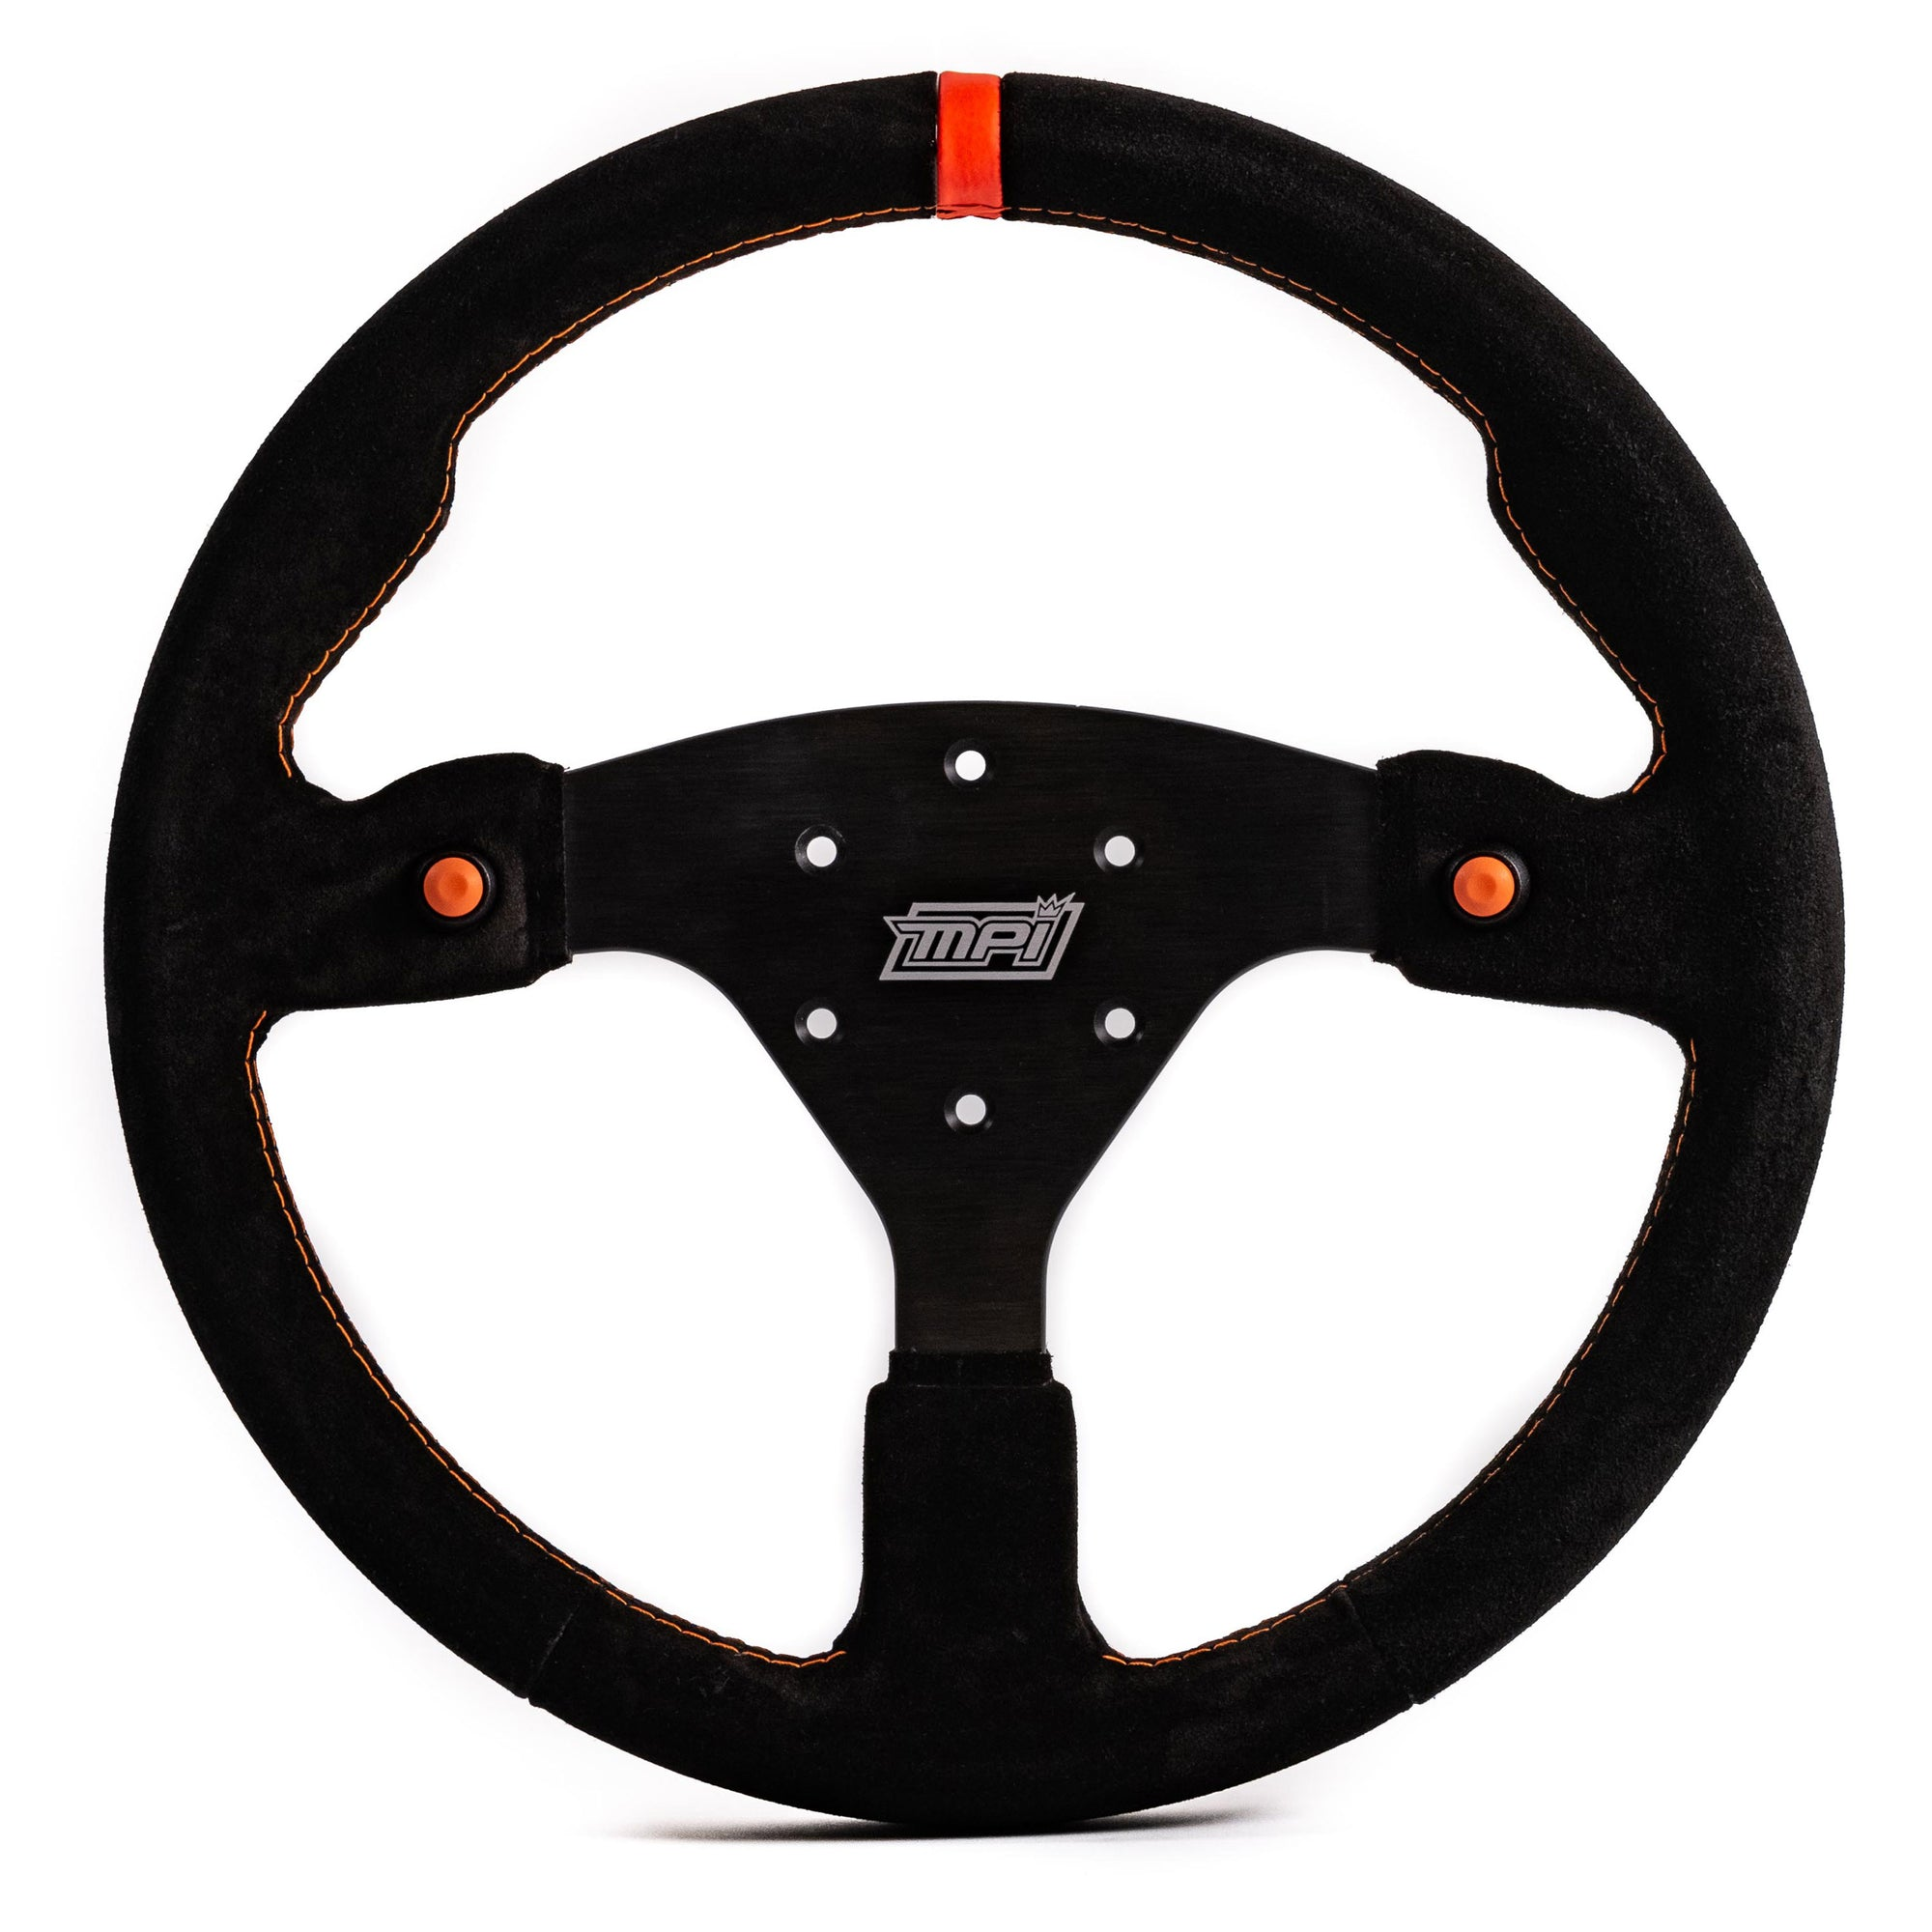 MPI Off Road Concept Specific Suede Steering Wheel w/Orange Push Buttons (MPI-F-14-2B-ORNG)-MPI-Motion Raceworks